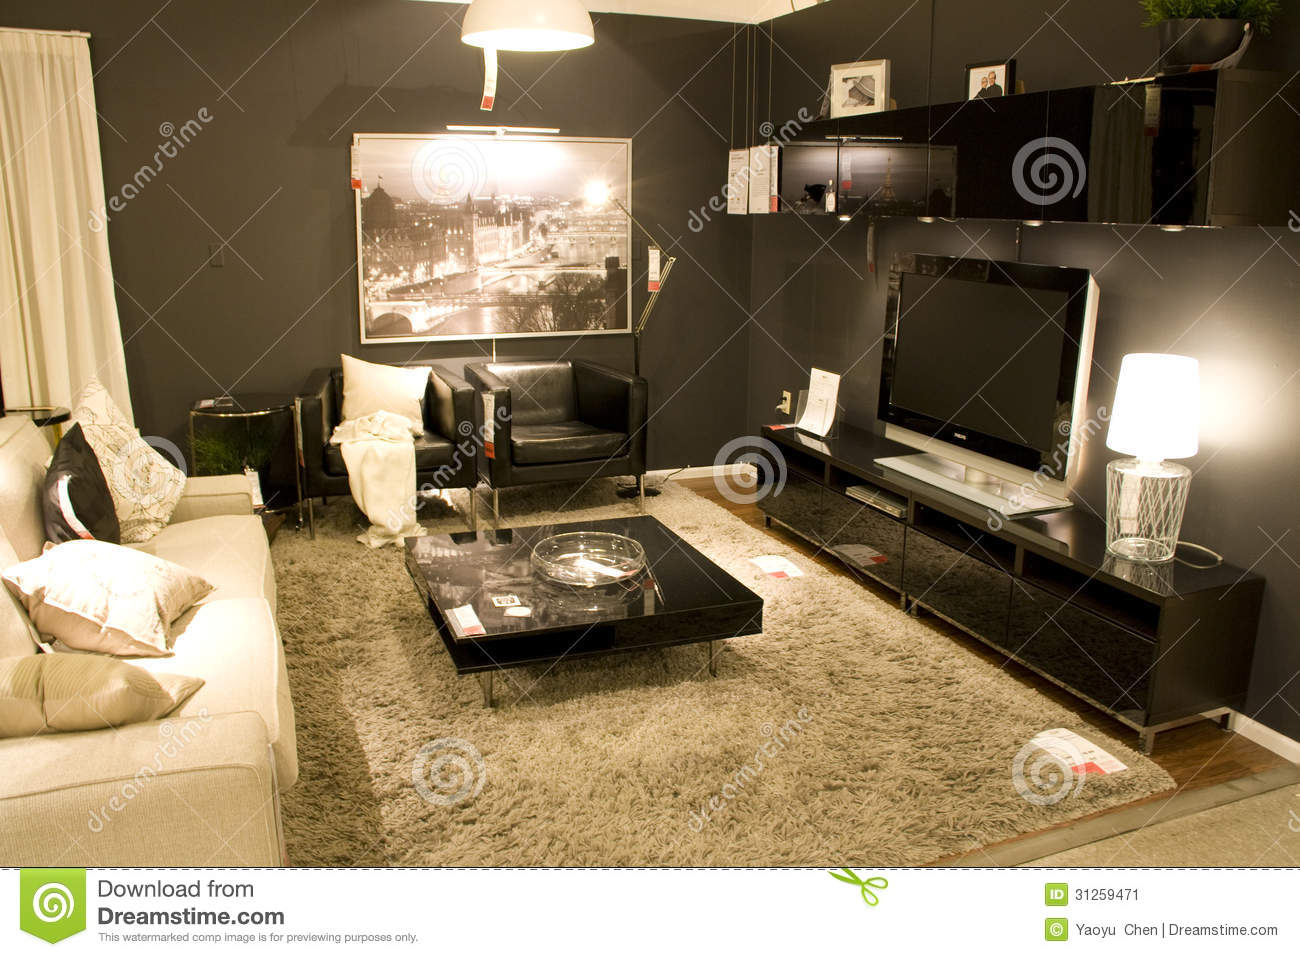 Living Room Furniture Store Editorial Photo - Image: 31259471